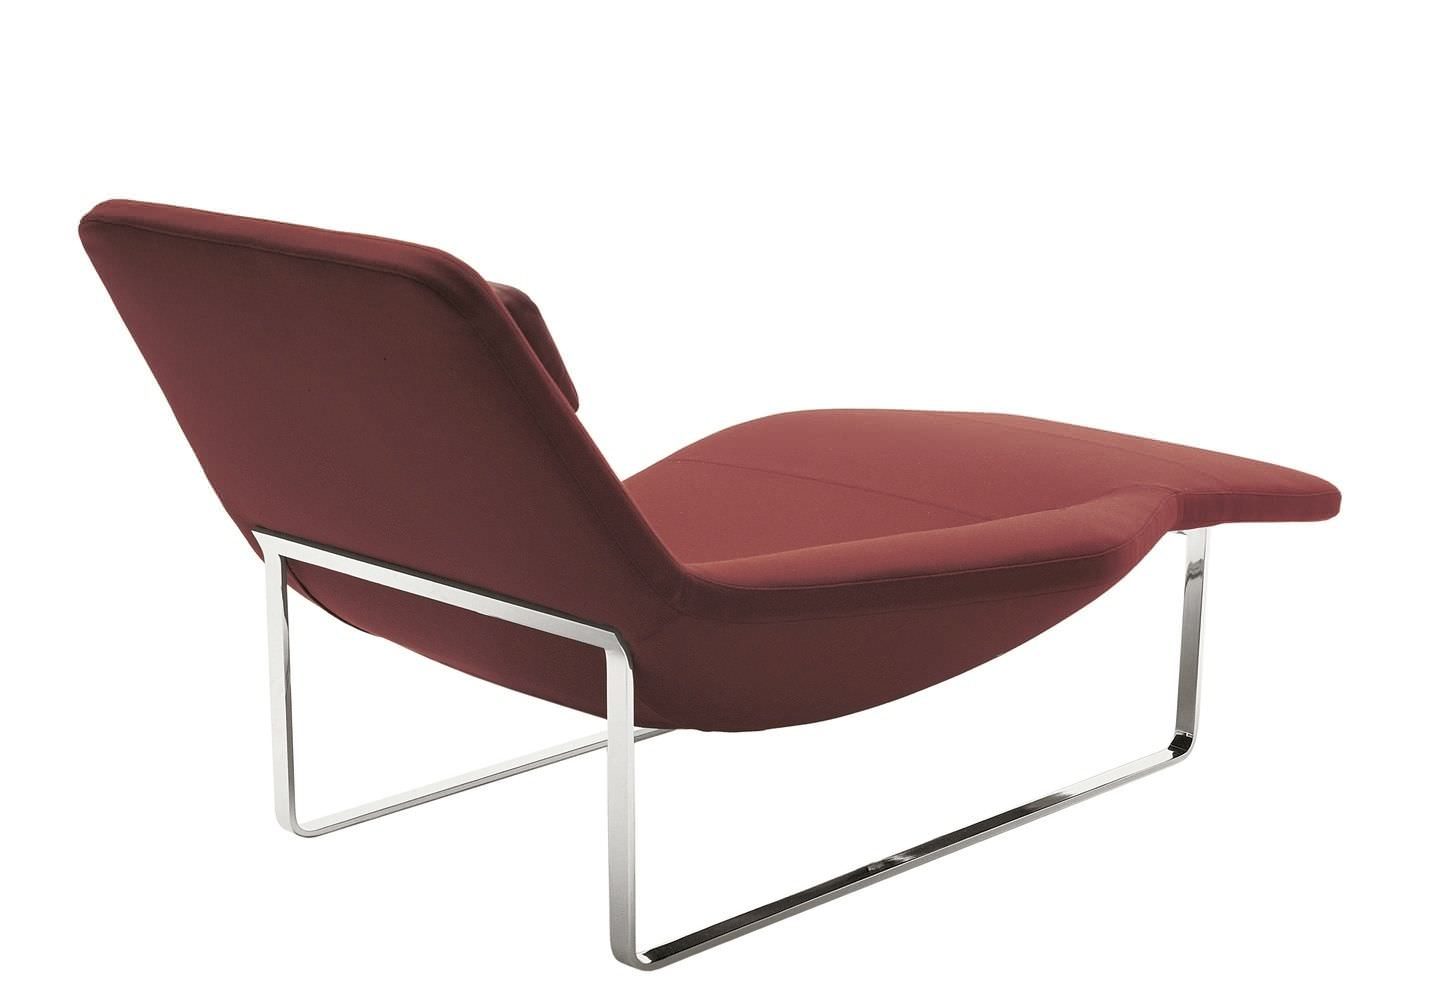 Chaise Longue Classic Design Italia.Contemporary Chaise Longue Fabric Steel Landscape 05 By